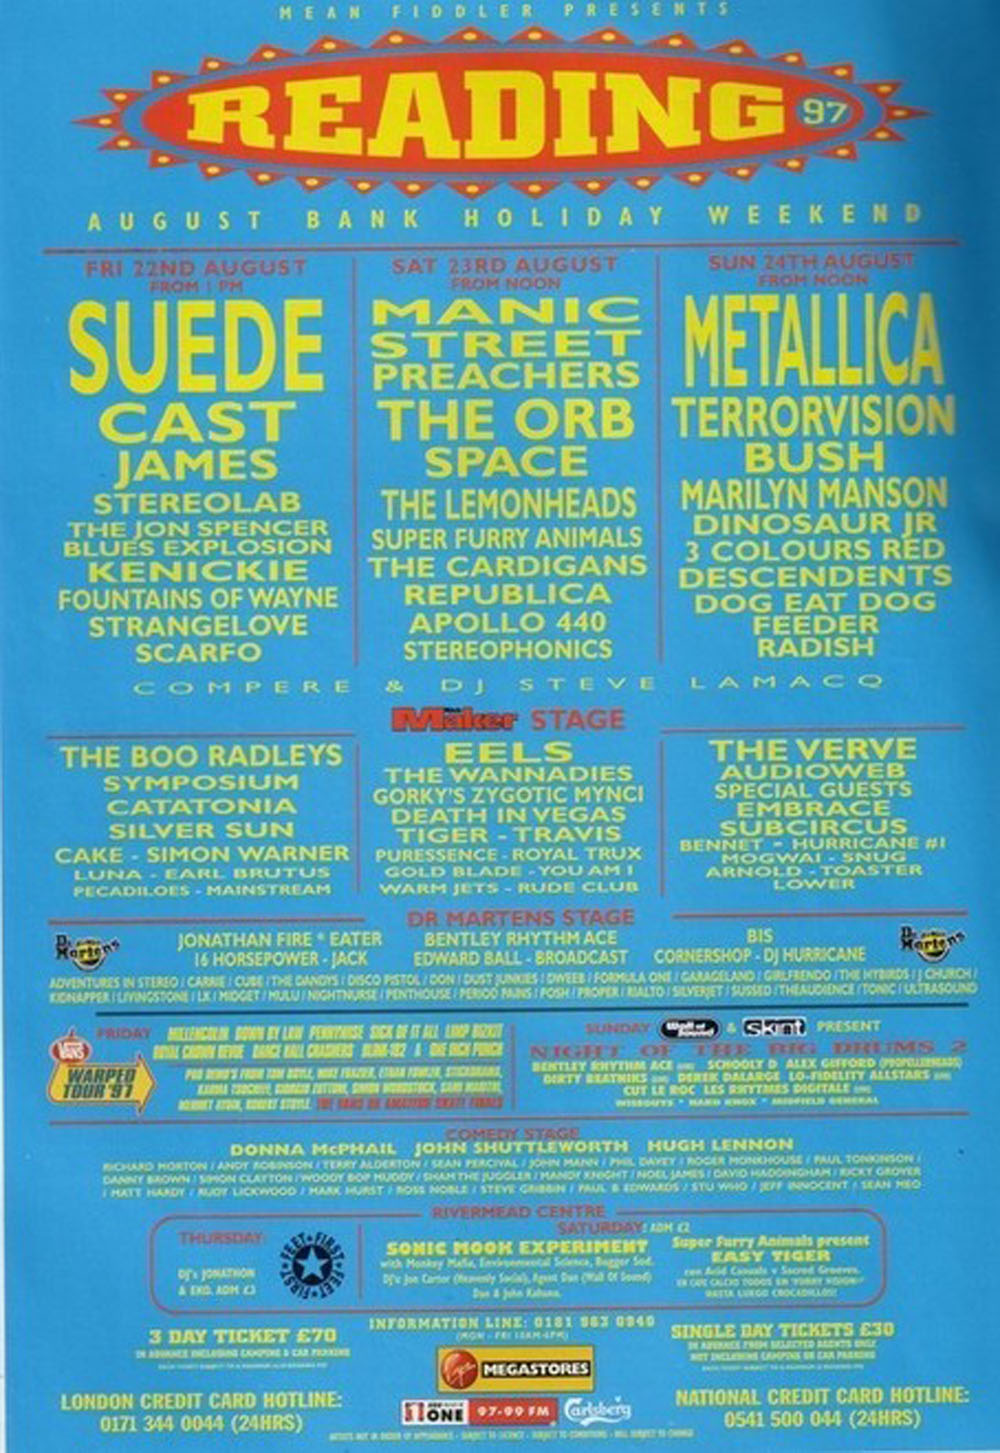 One Of The Three   1997-08-22 Reading Festival poster1997-08-22 ...